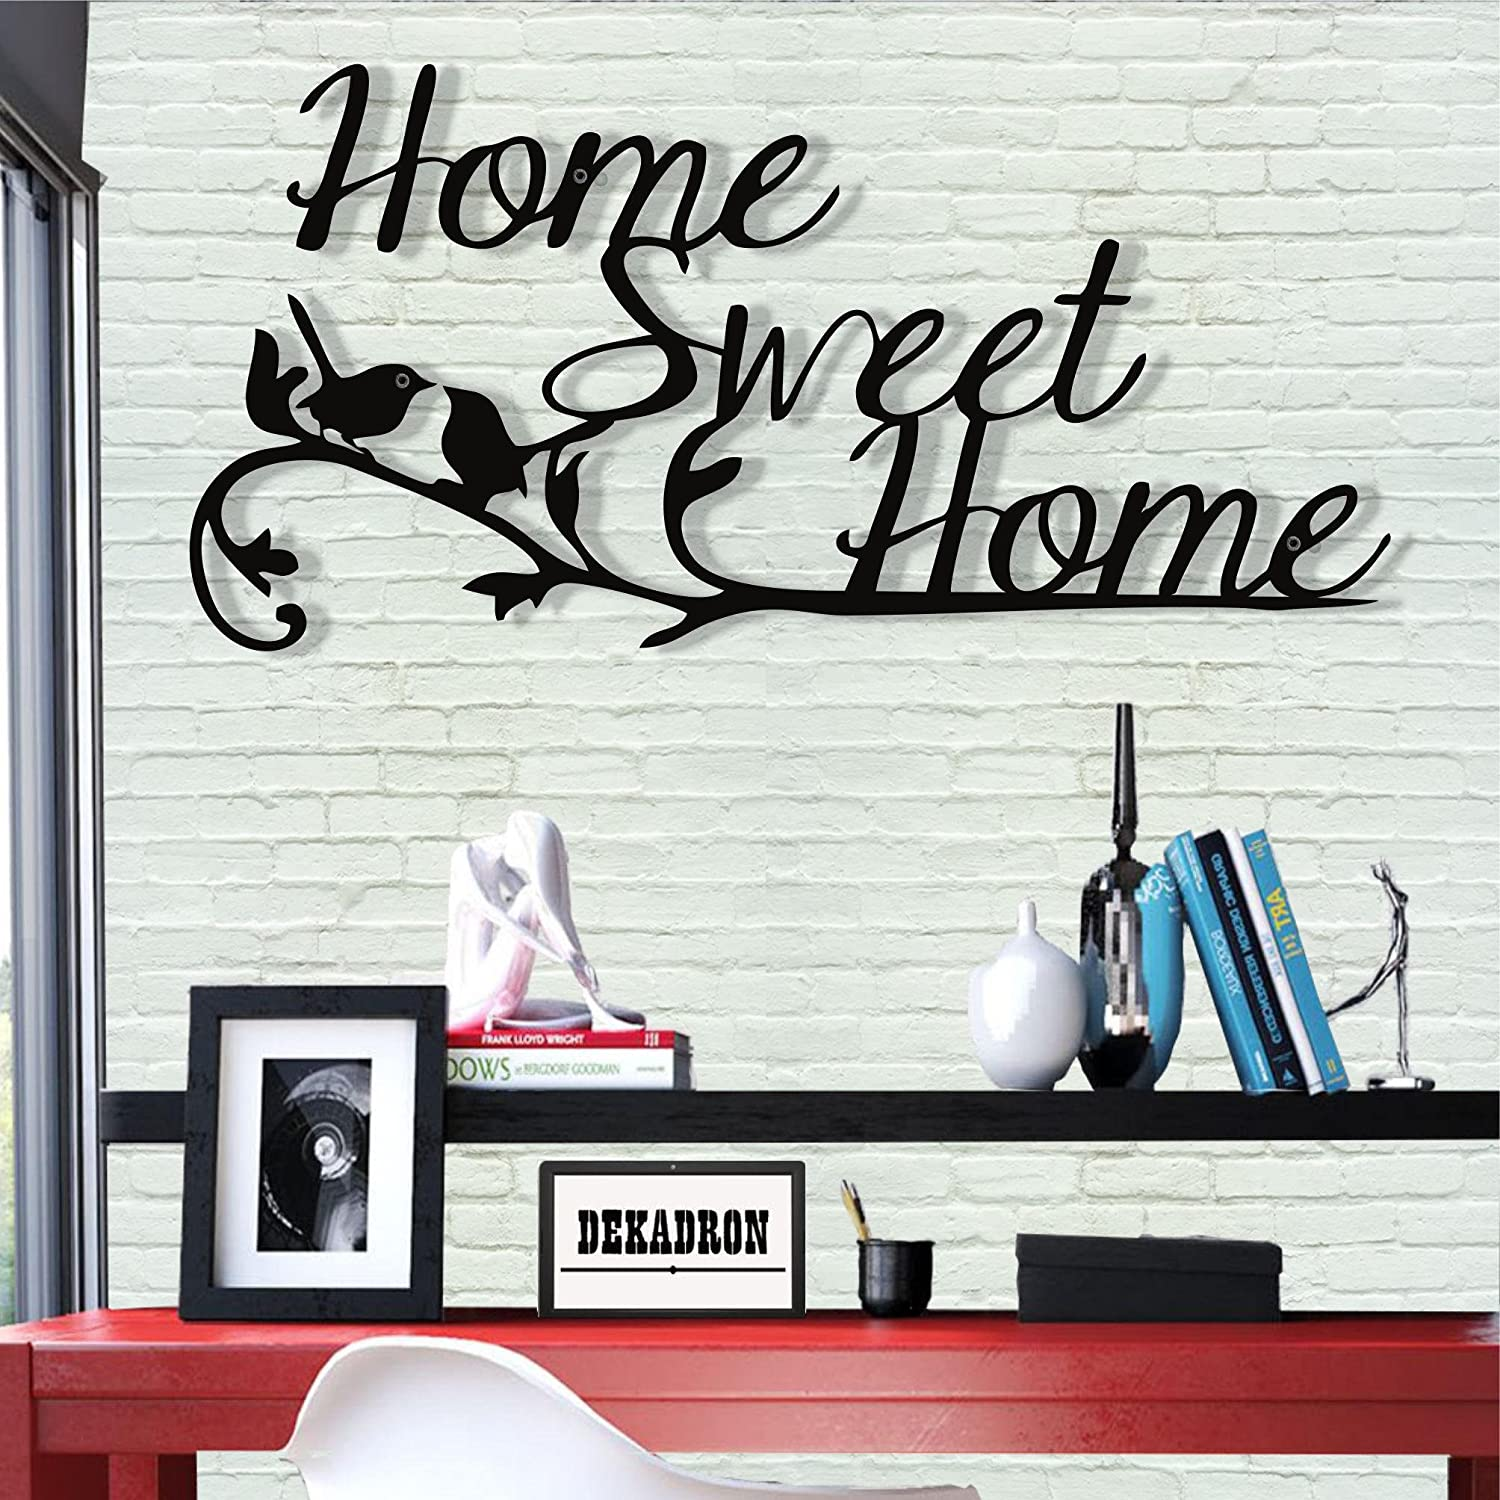 "Metal Wall Art - Home Sweet Home - 3D Wall Silhouette Metal Wall Decor Home Office Decoration Bedroom Living Room Decoration (30"" W x 15"" H/76x38cm)"